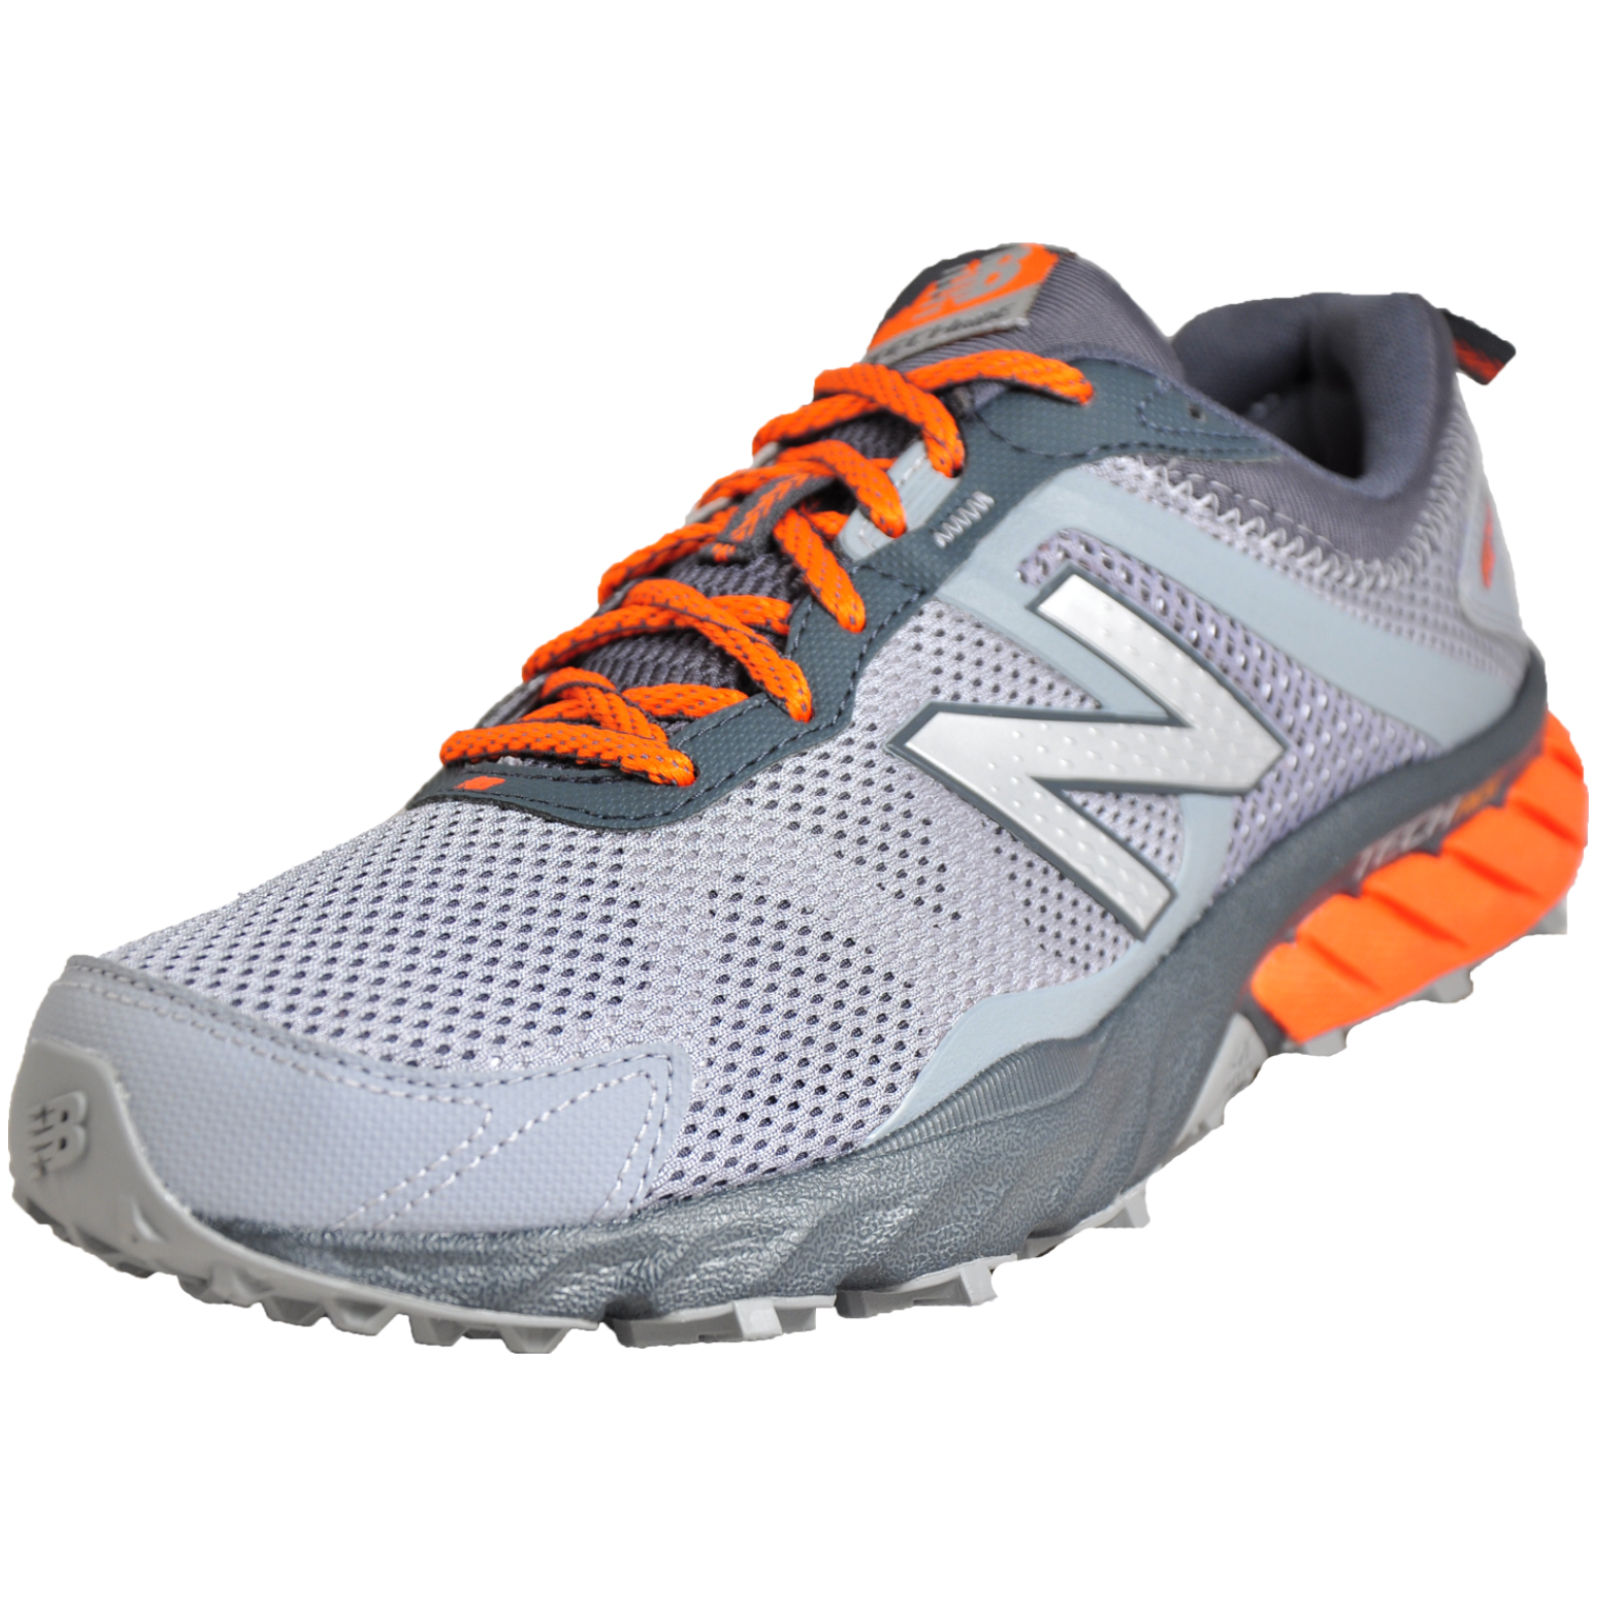 Details about New Balance 610 v5 All Terrain Trail Men s Running Shoes  Trainers UK 8 Wide Fit 4d00c26b2